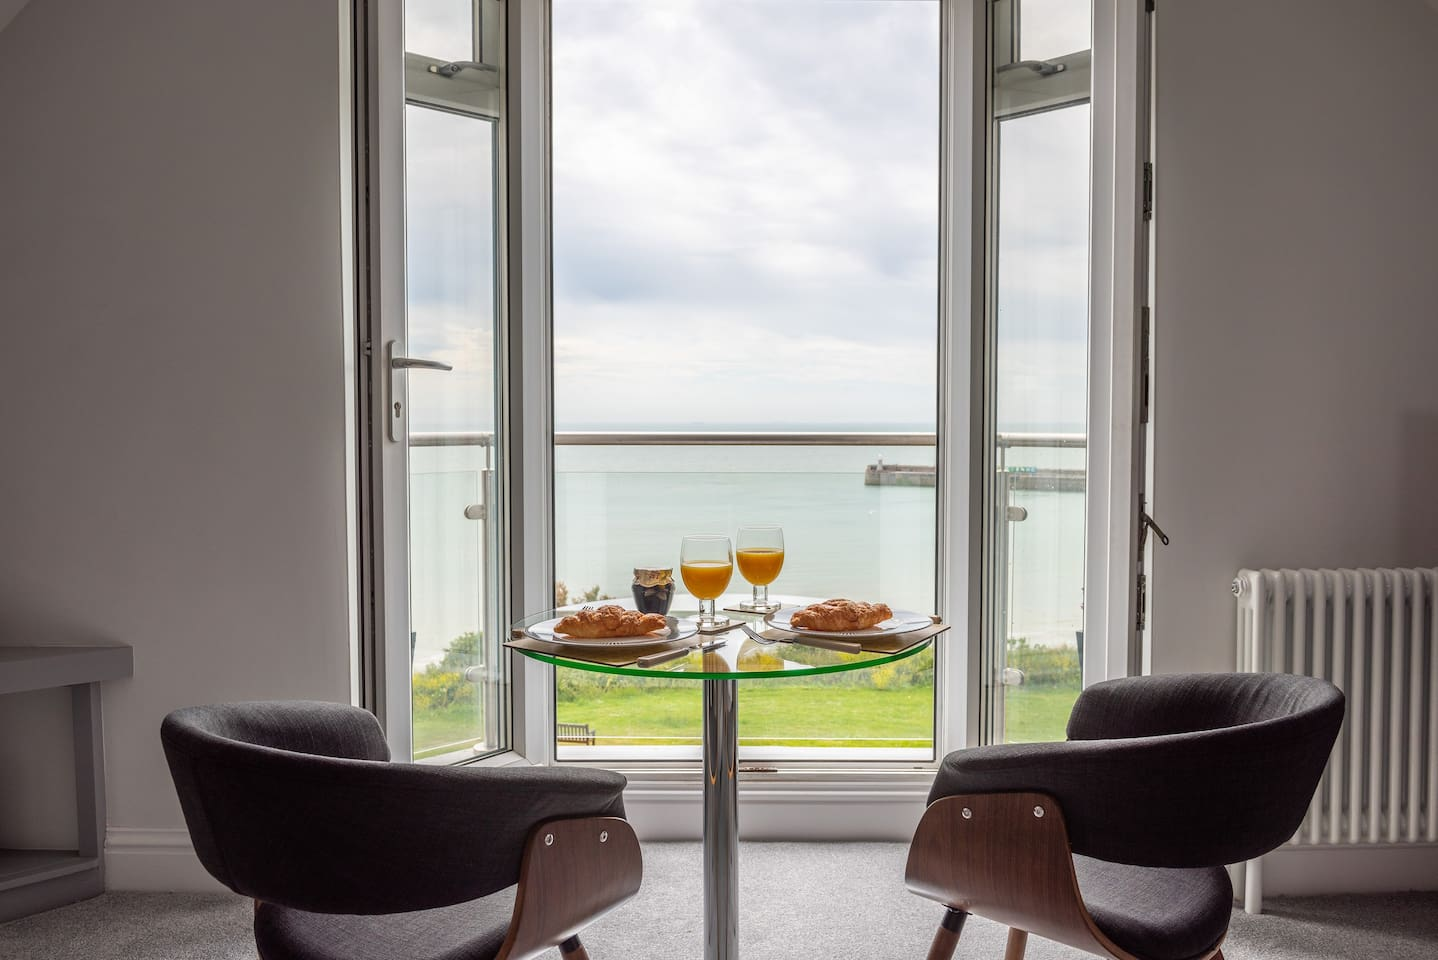 Devine view folkestone lofts for rent in kent england united uninterrupted views of east cliff english channel and folkestone harbour arm solutioingenieria Gallery